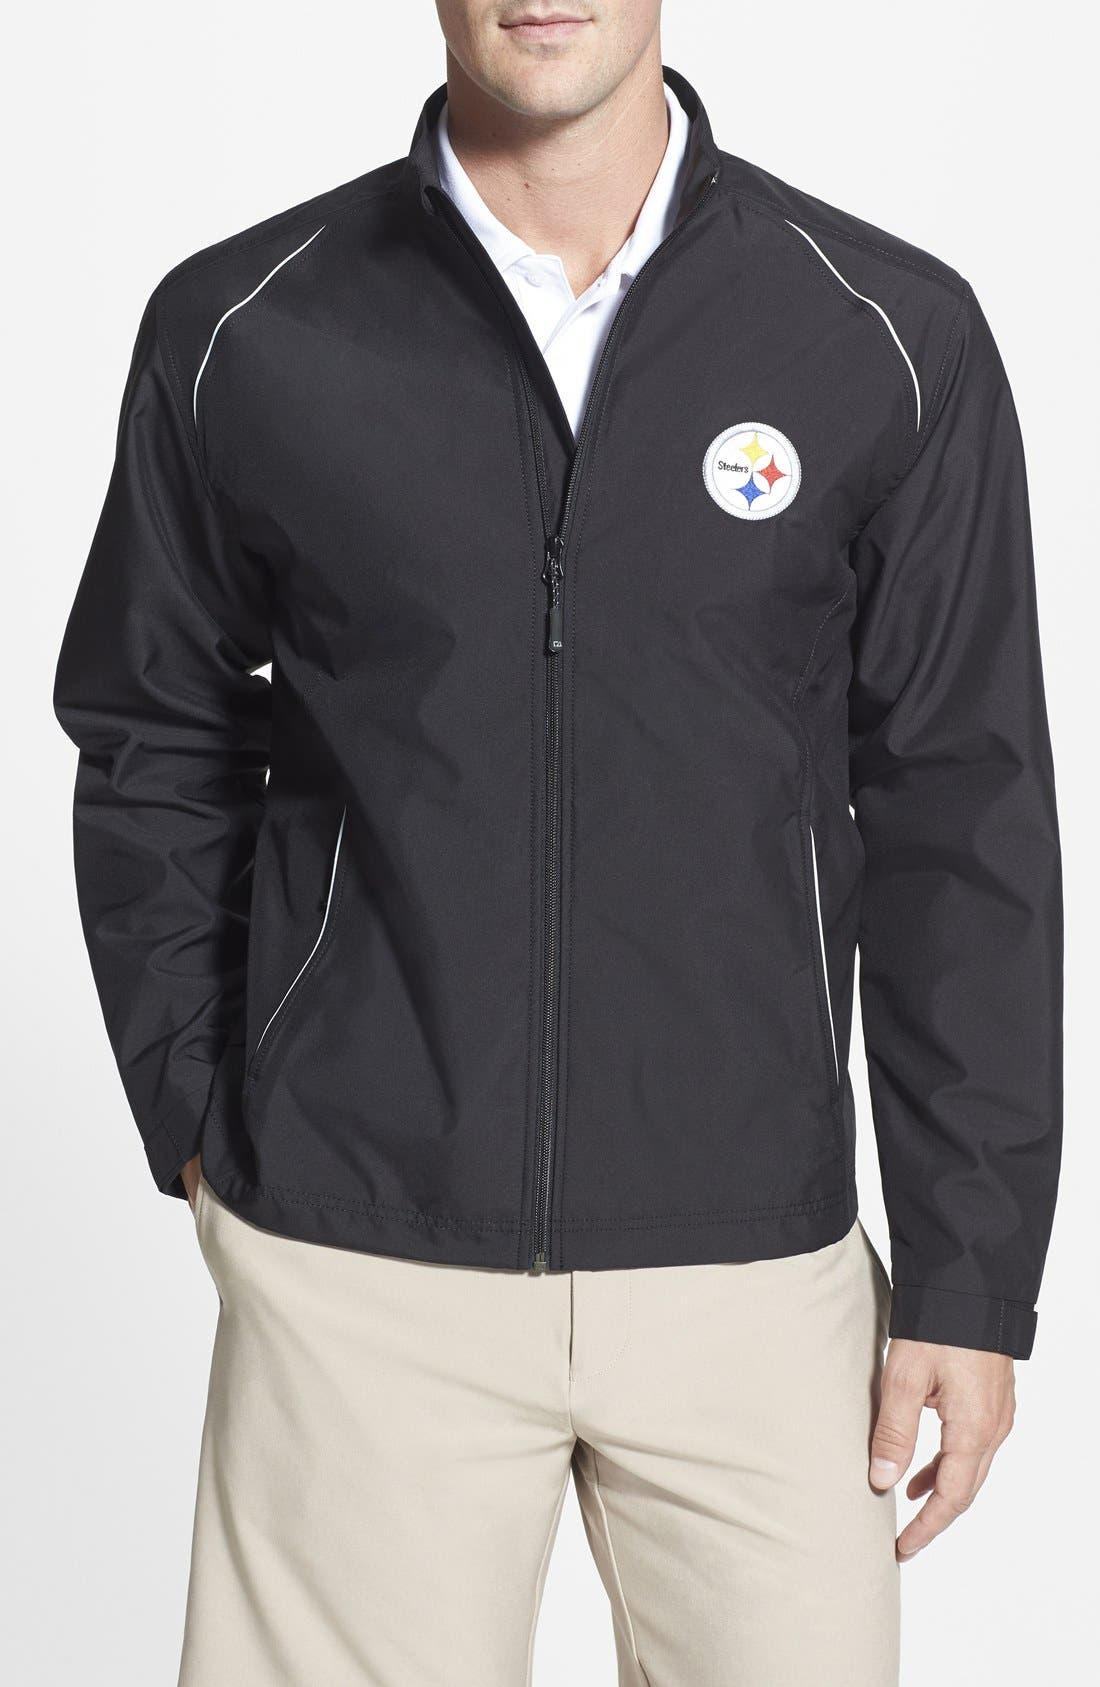 Pittsburgh Steelers - Beacon WeatherTec Wind & Water Resistant Jacket,                             Main thumbnail 1, color,